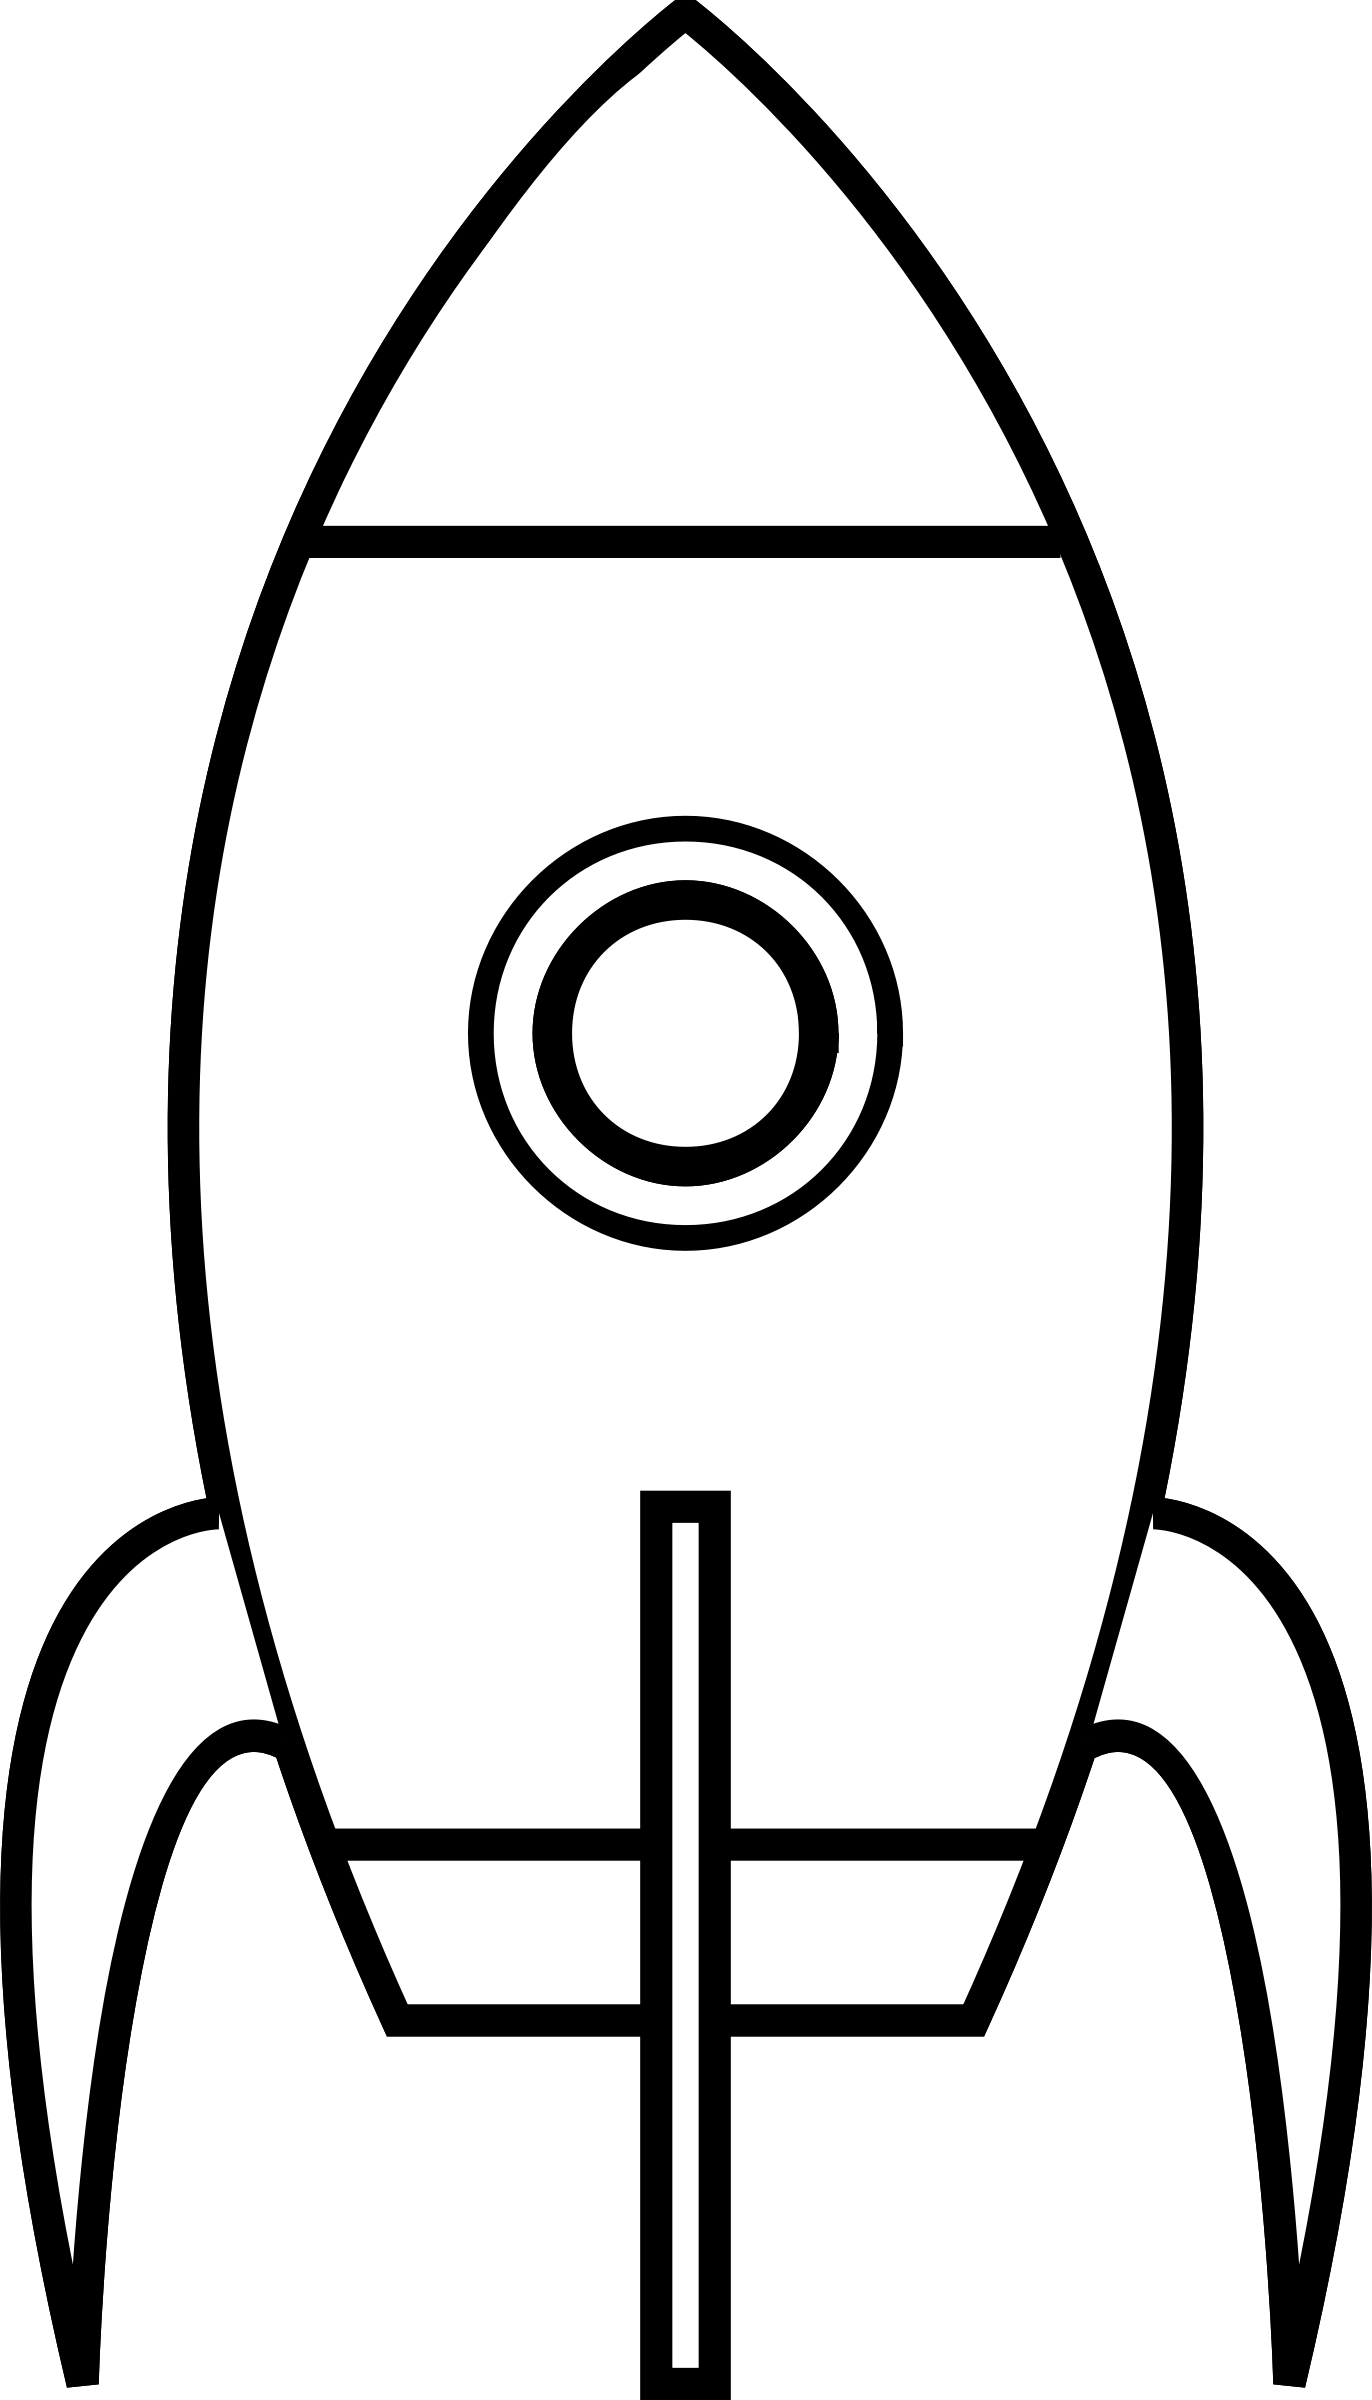 Clipart rocket black and white. Cartoon moon remix big